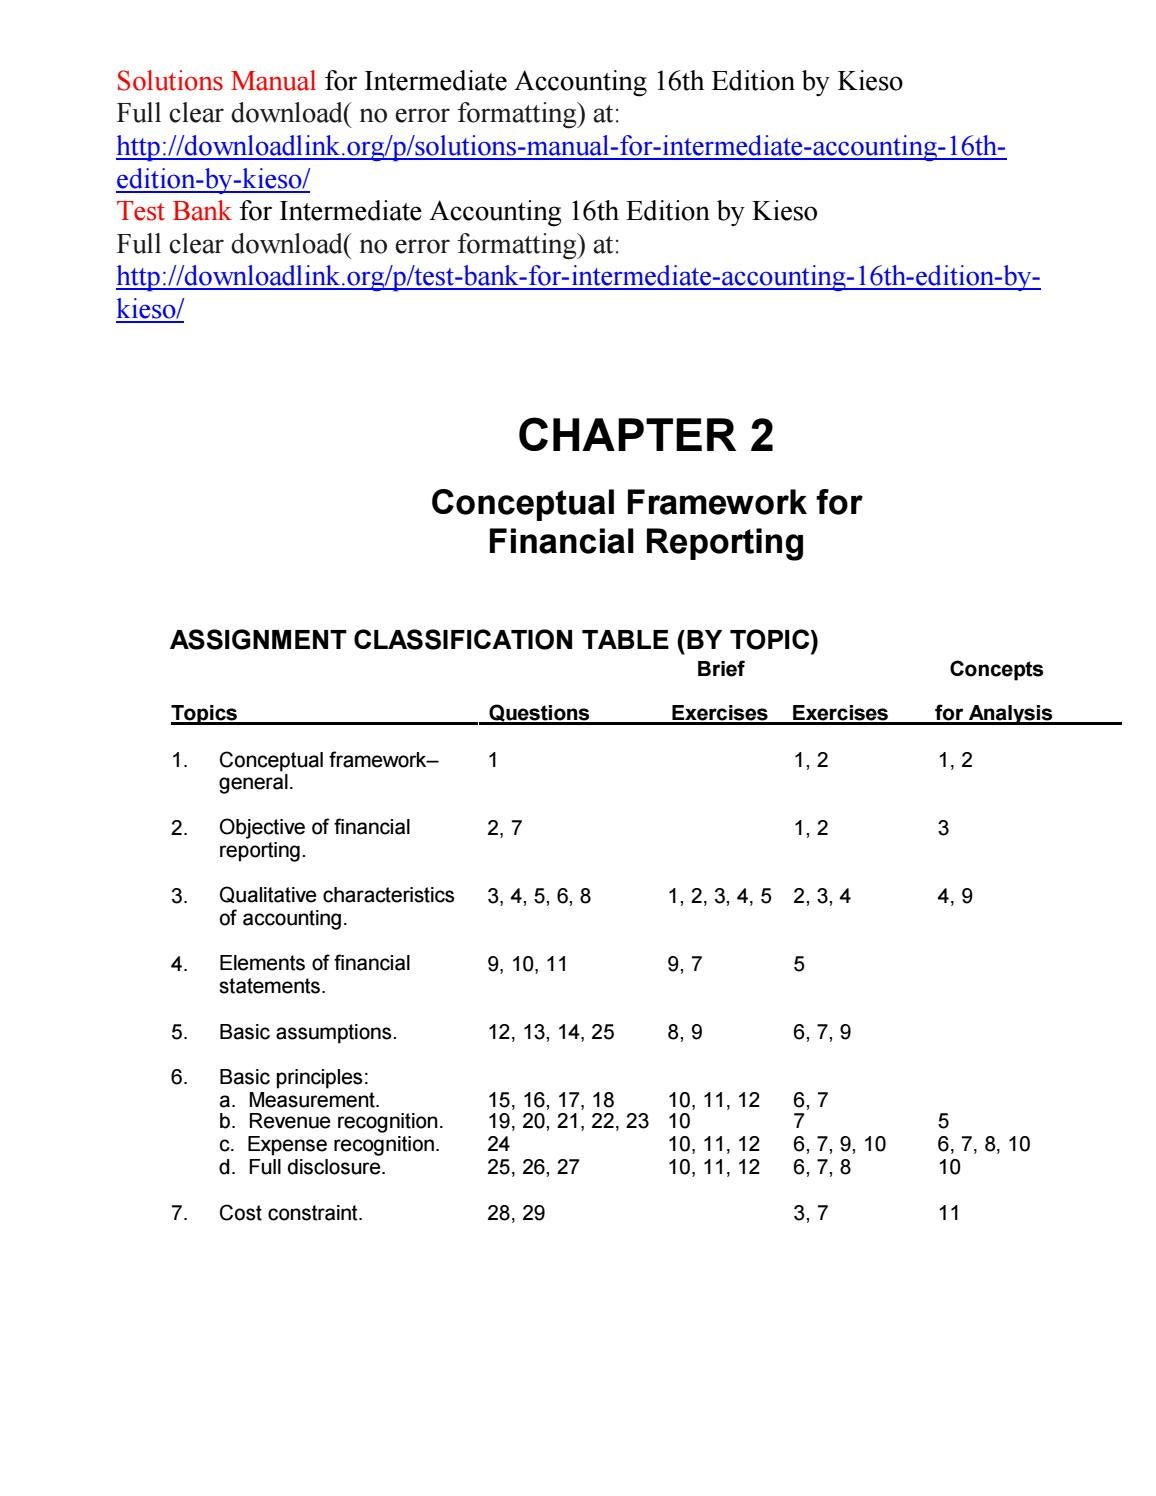 Solutions manual for intermediate accounting 16th edition by kieso by  Adler1826 - issuu